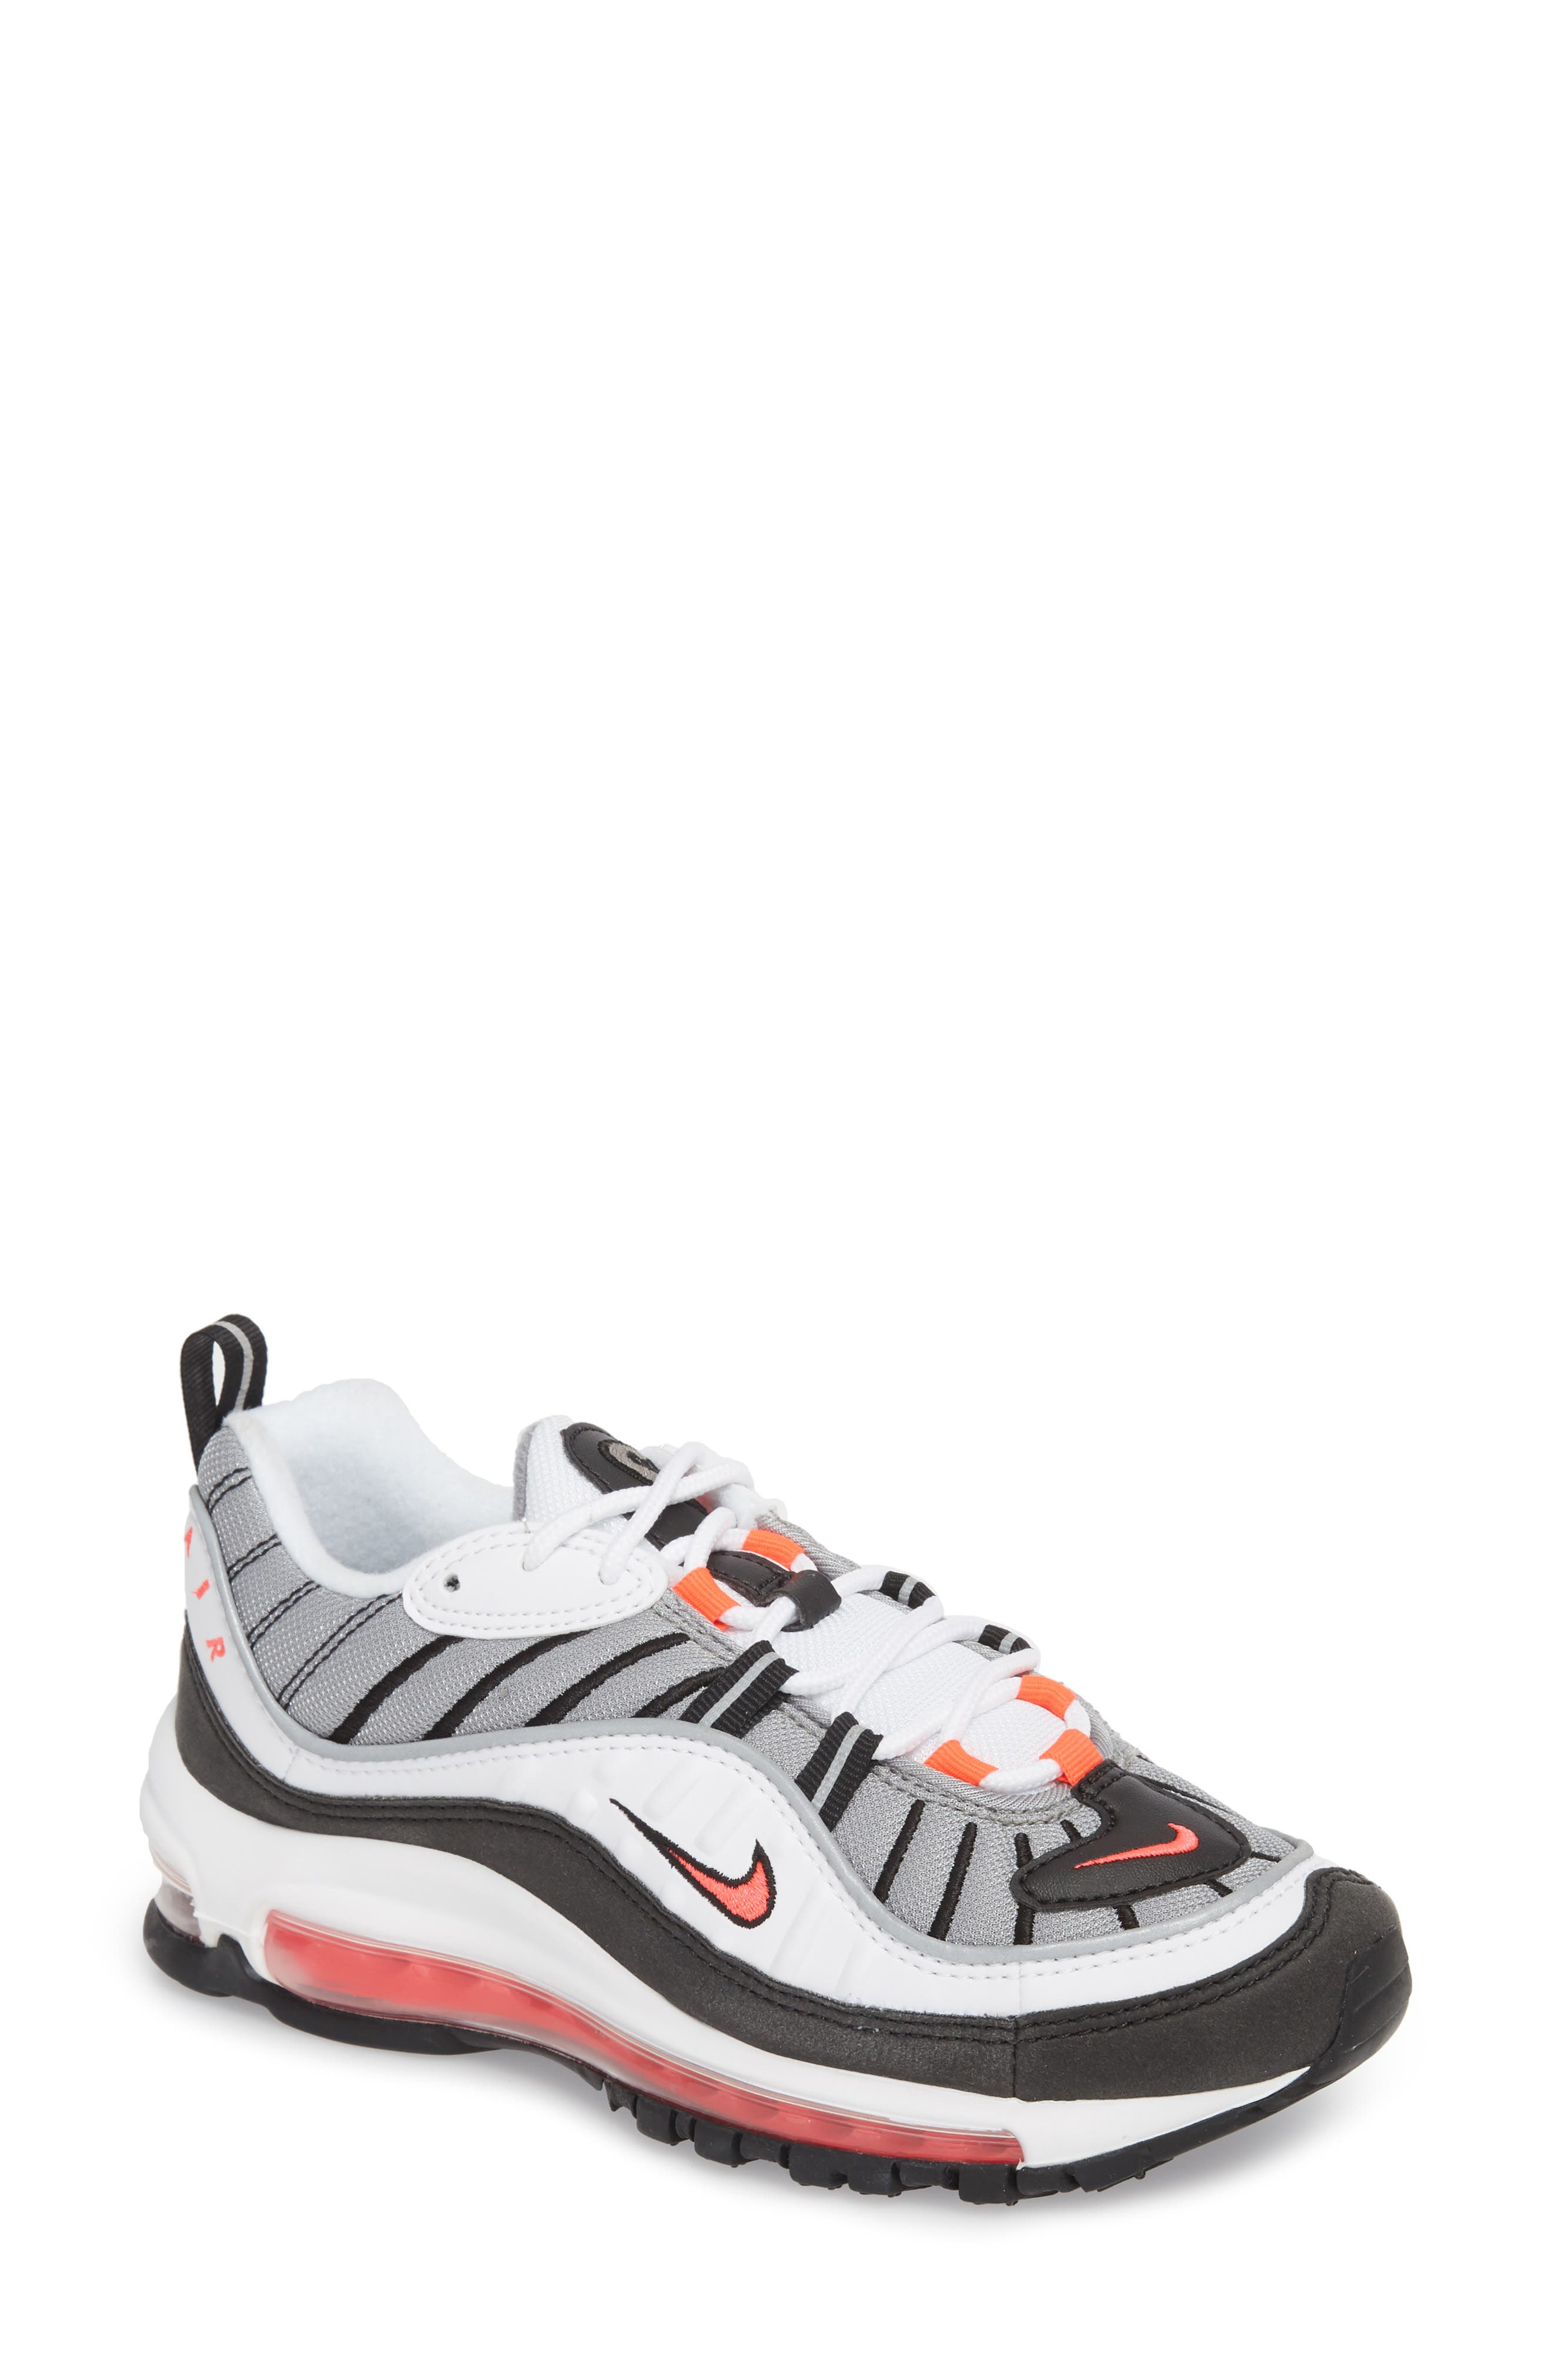 Air Max 98 Running Shoe,                             Main thumbnail 1, color,                             WHITE/ RED/ DUST/ REFLECT